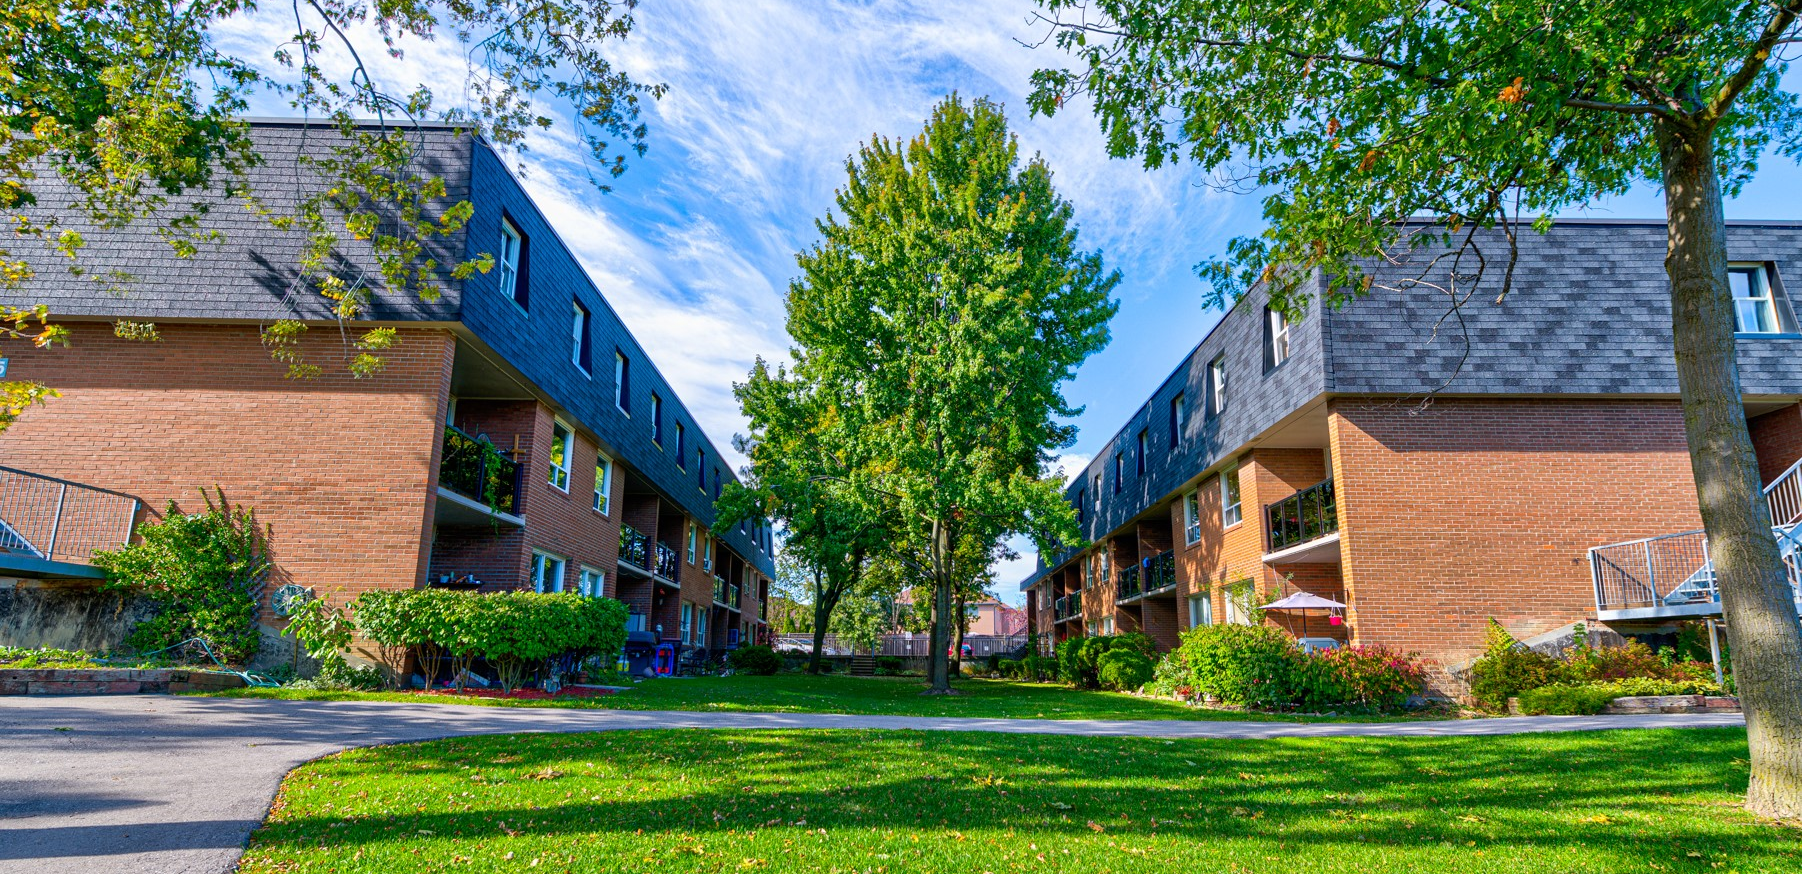 Two rows of low-rise brick buildings, with green grass and a bright blue sky